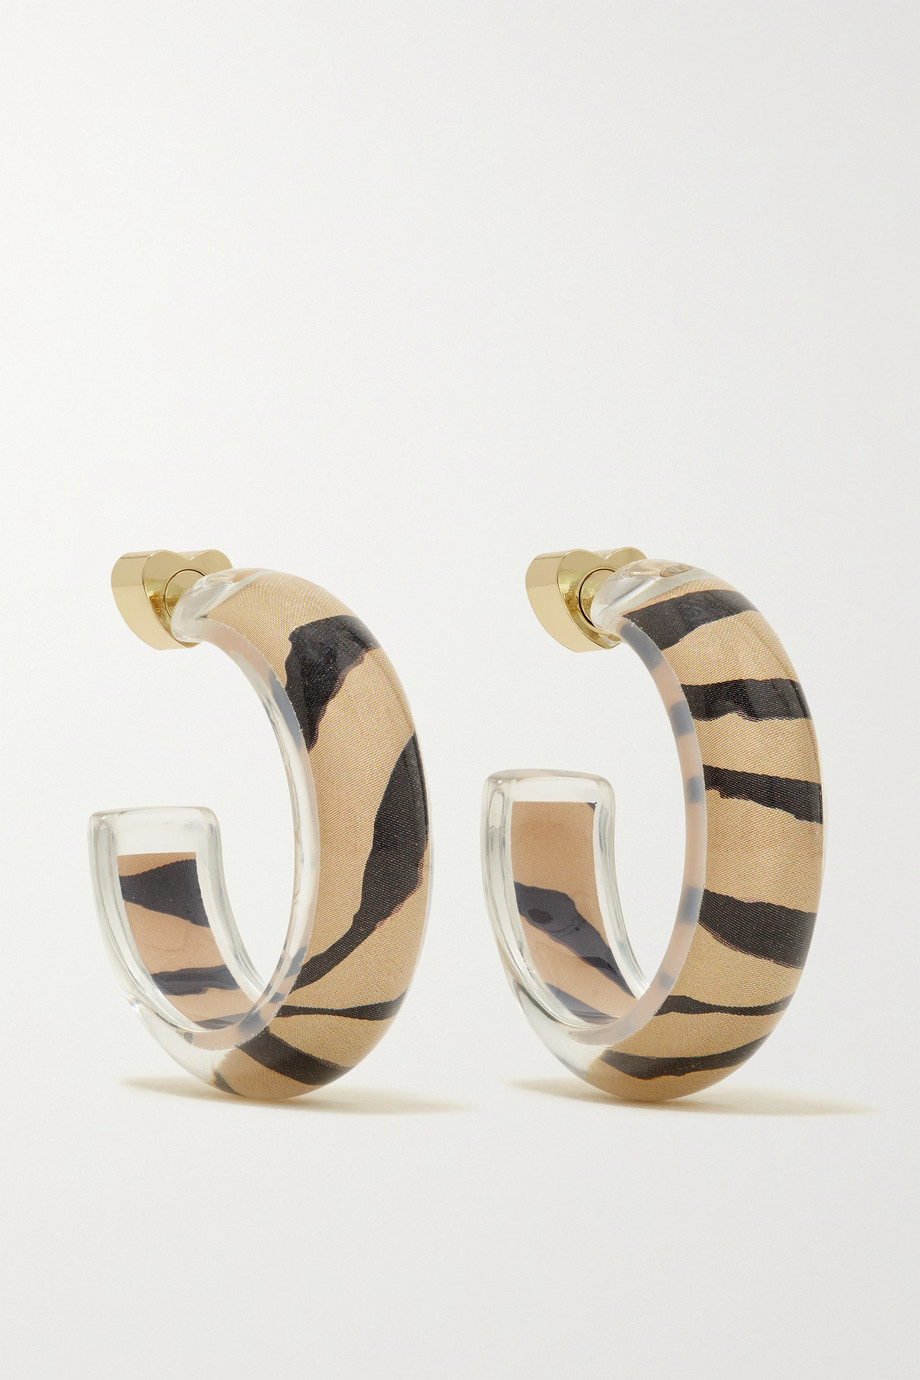 Alison Lou Jelly Tiger 14-karat gold, lucite and enamel hoop earrings